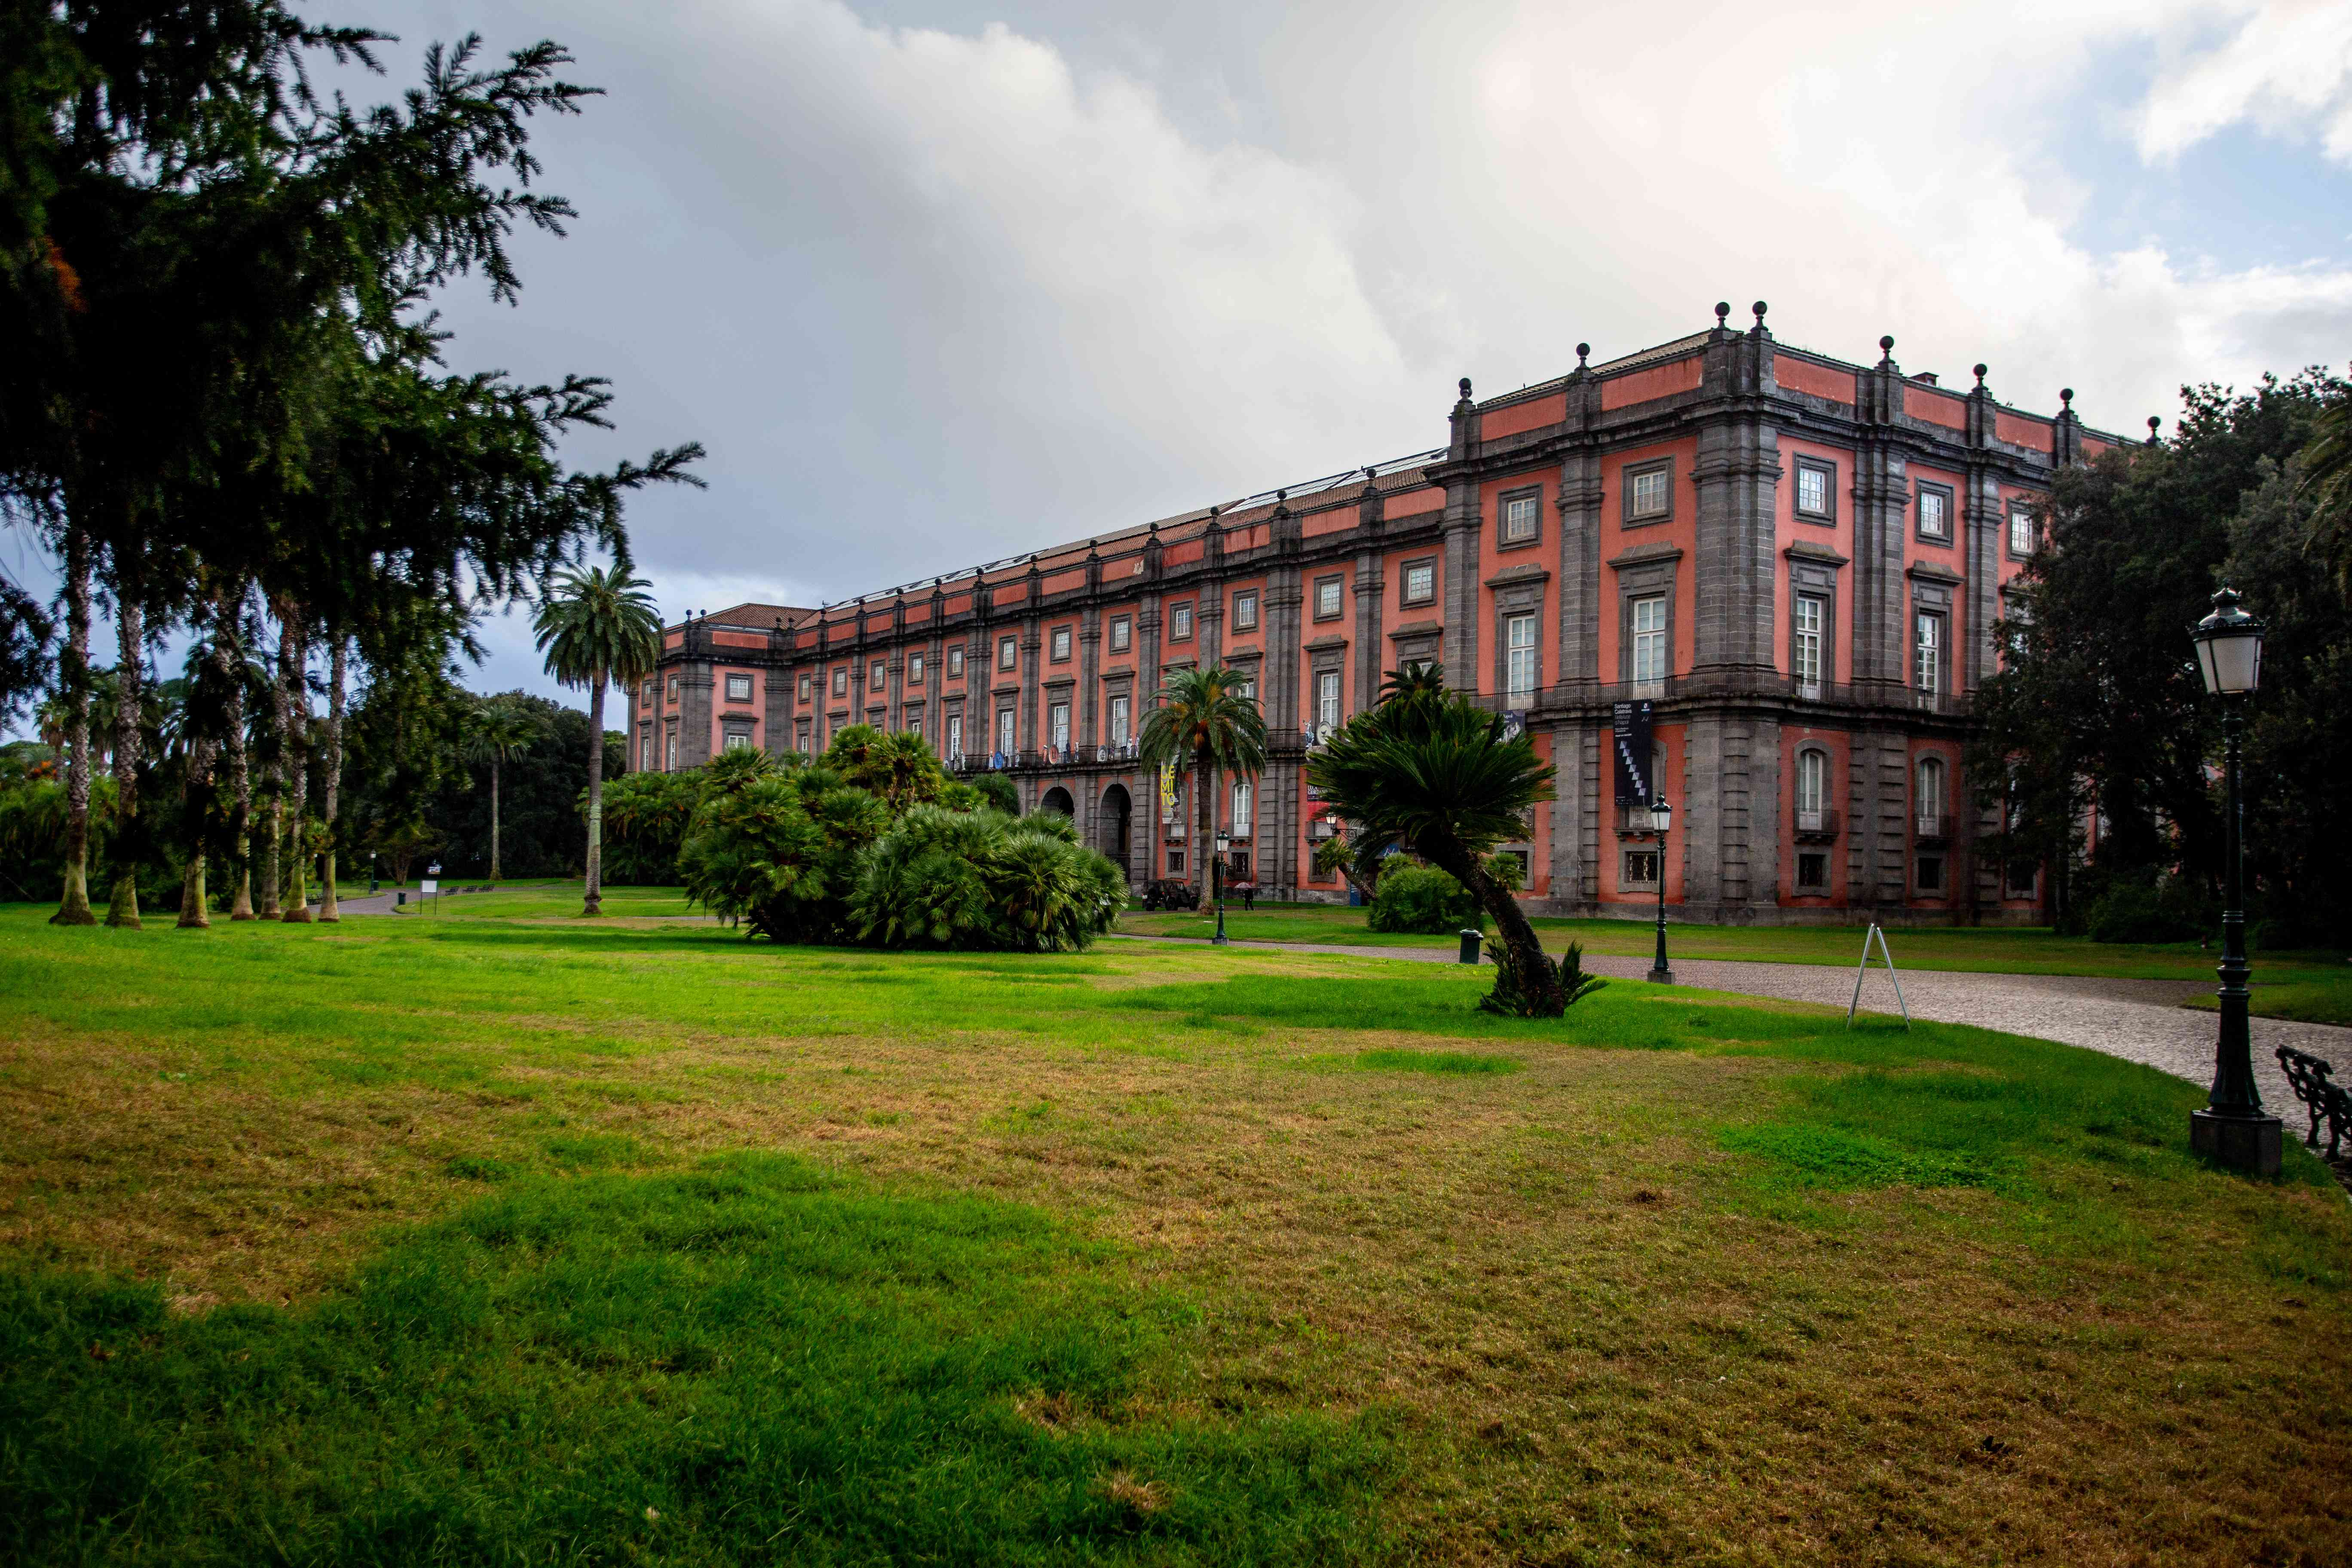 Capodimonte Museum and National Galleries